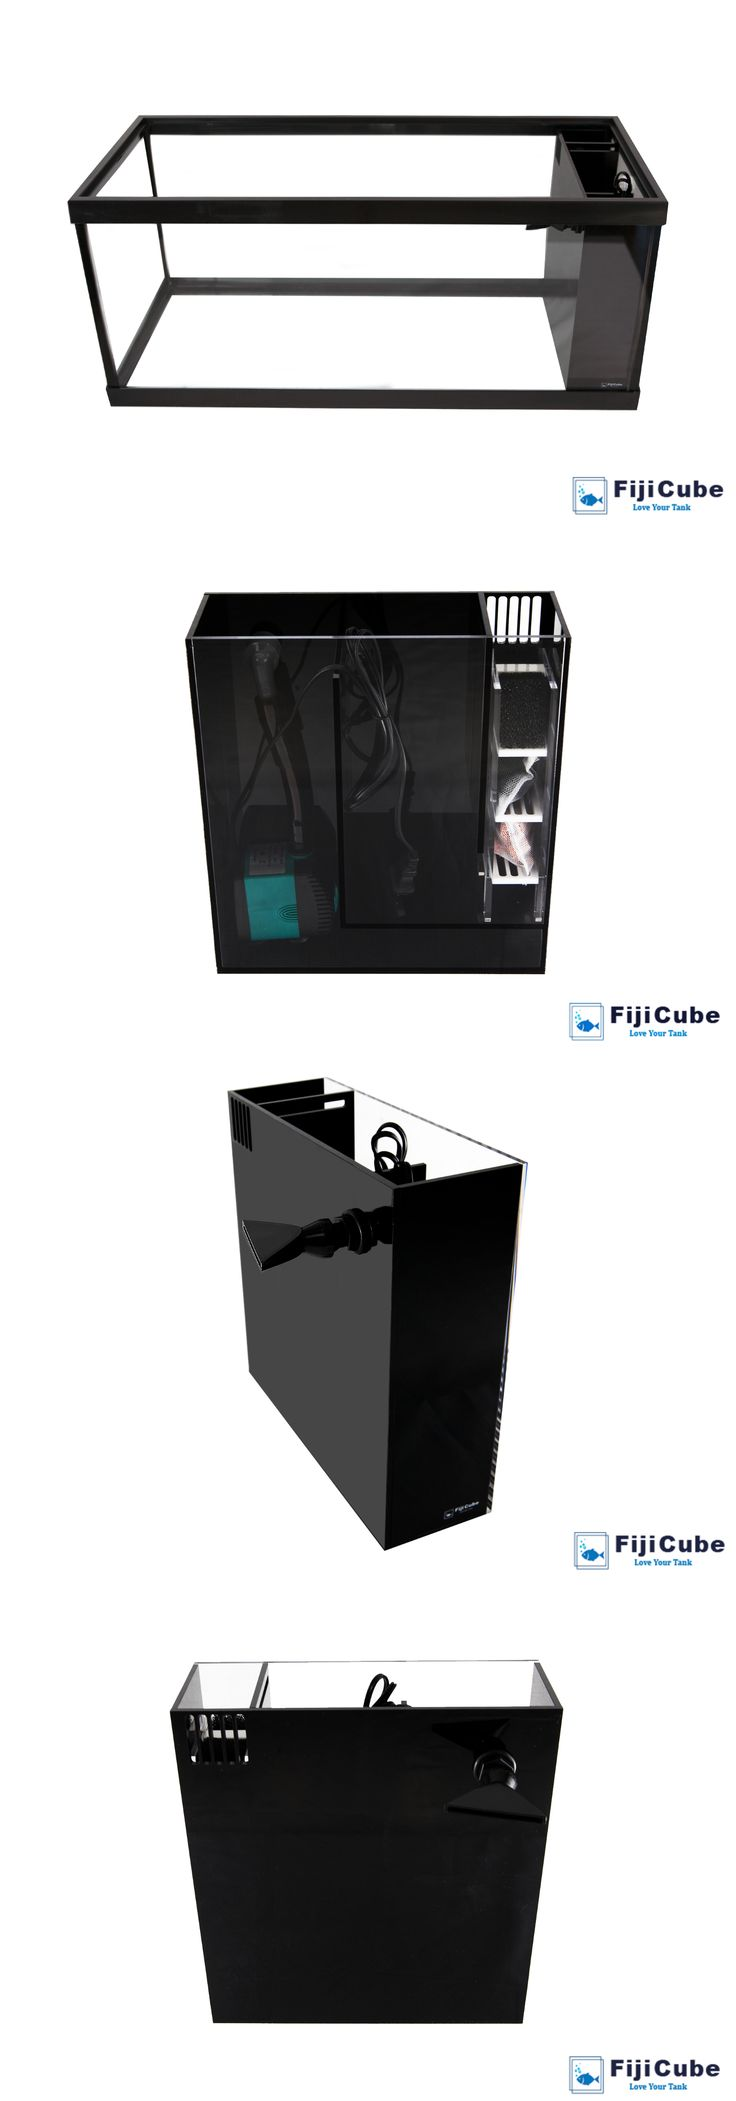 Aquariums and Tanks 20755: In-Sump All-In-One Aio Aquarium Filtration Sump Kit - 20 Gallon Long - Fiji Cube -> BUY IT NOW ONLY: $104.99 on eBay!